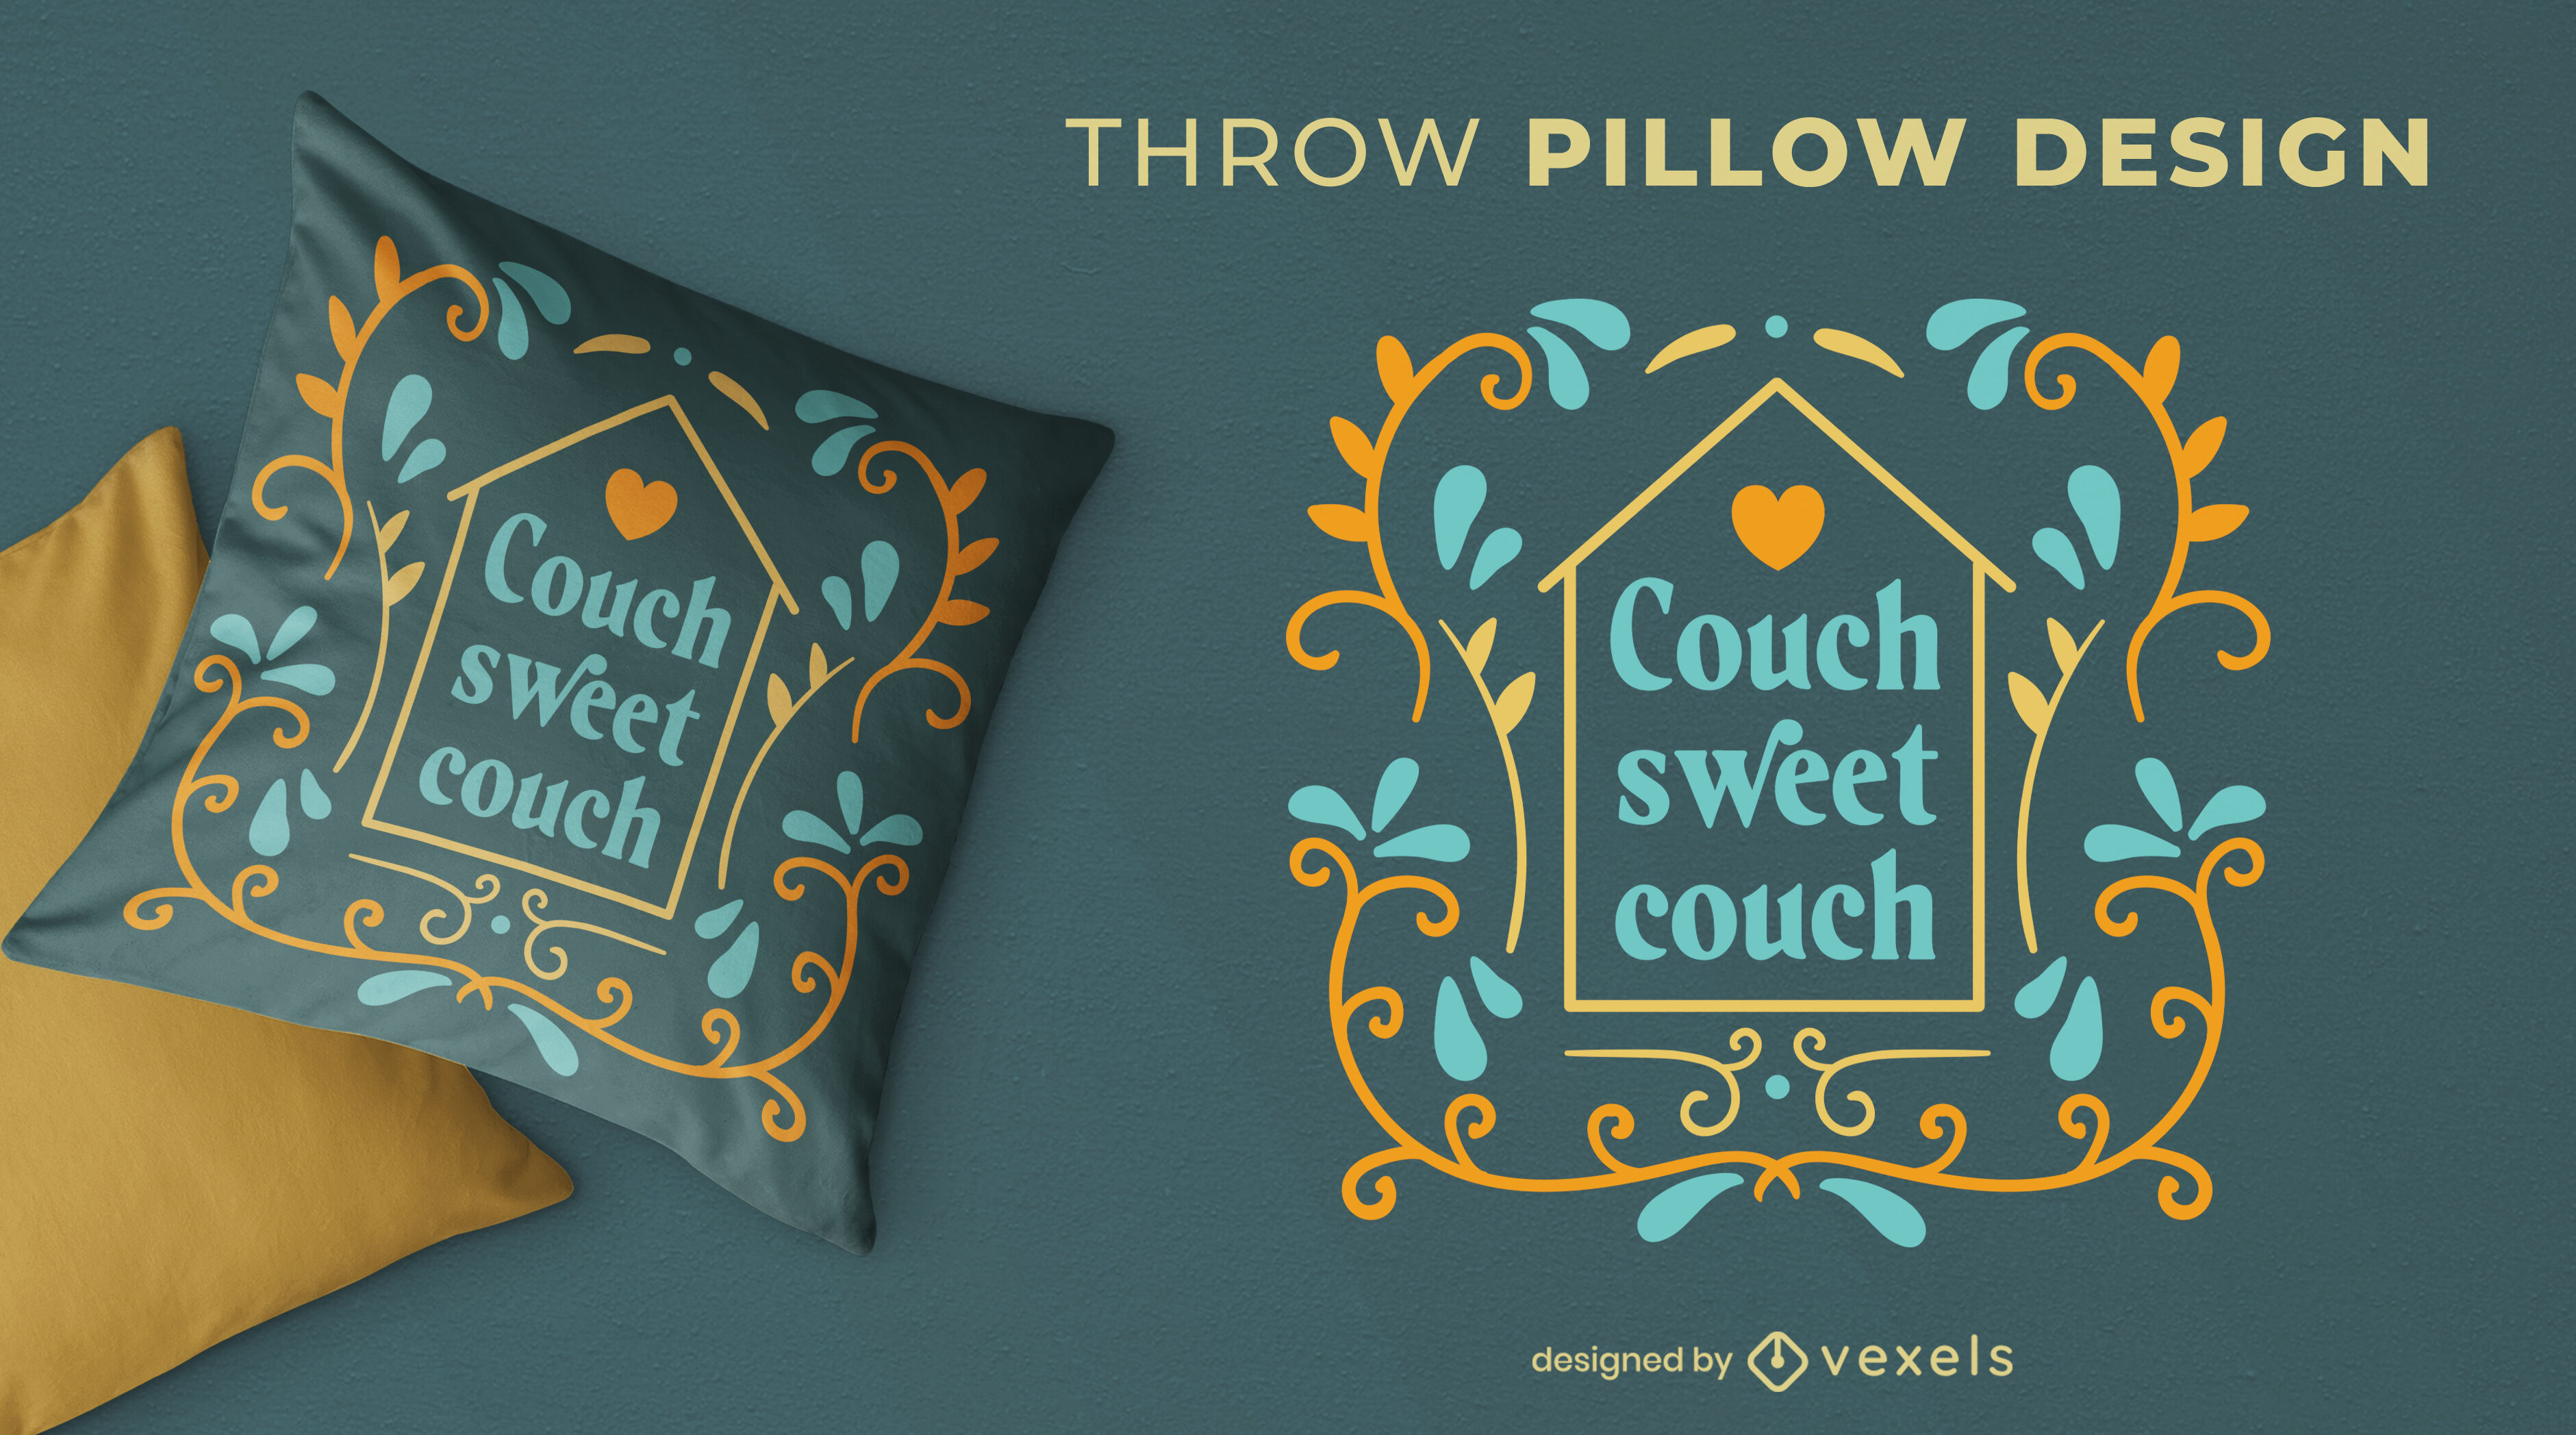 Sweet couch quote throw pillow design